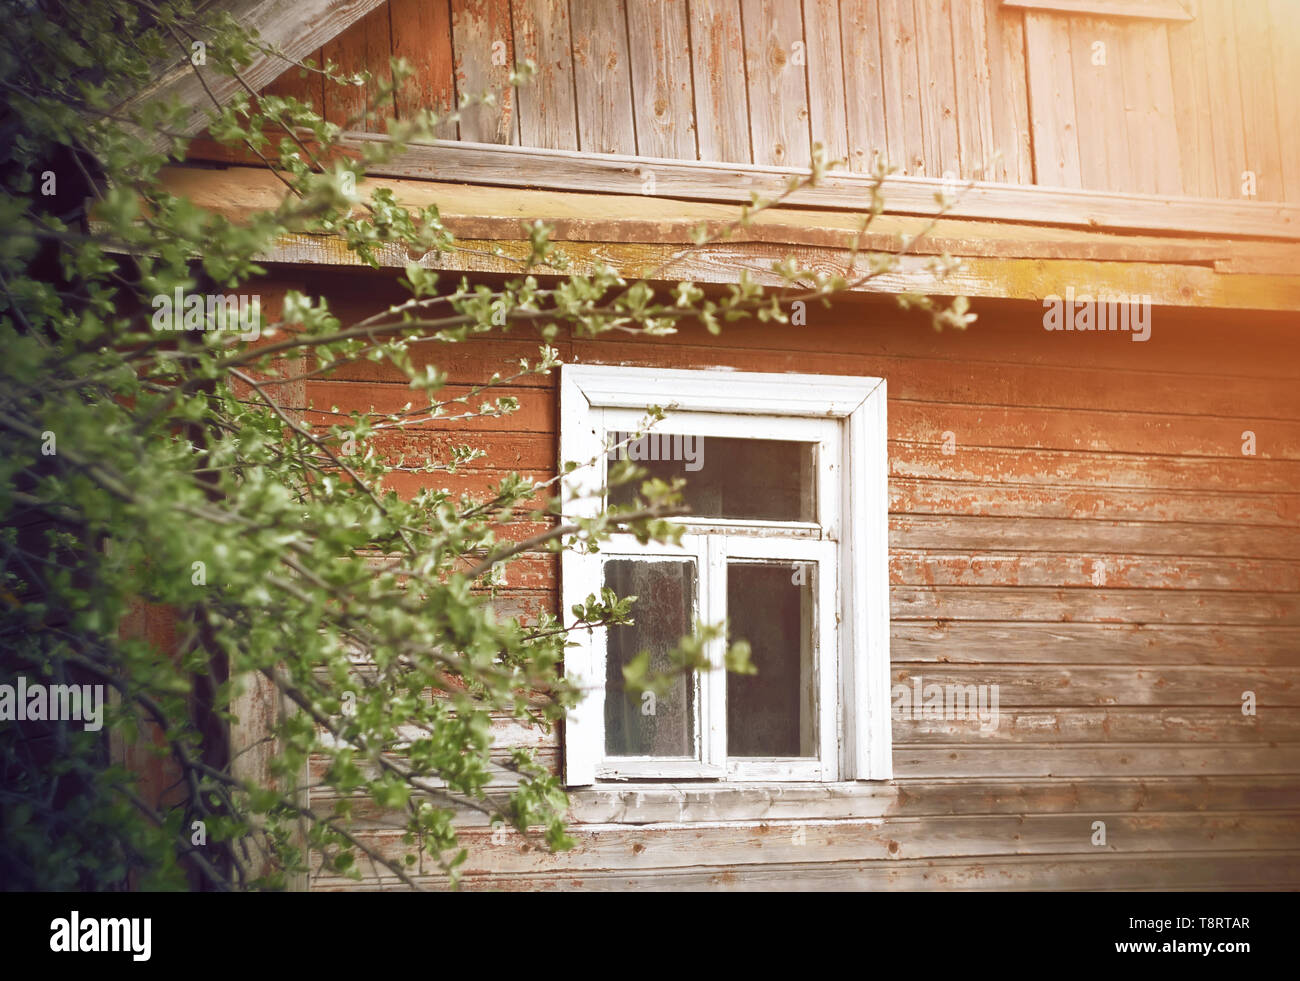 Old wooden dilapidated village house with a white frame on the window, in the spring sunny garden which grows an Apple tree - Stock Image